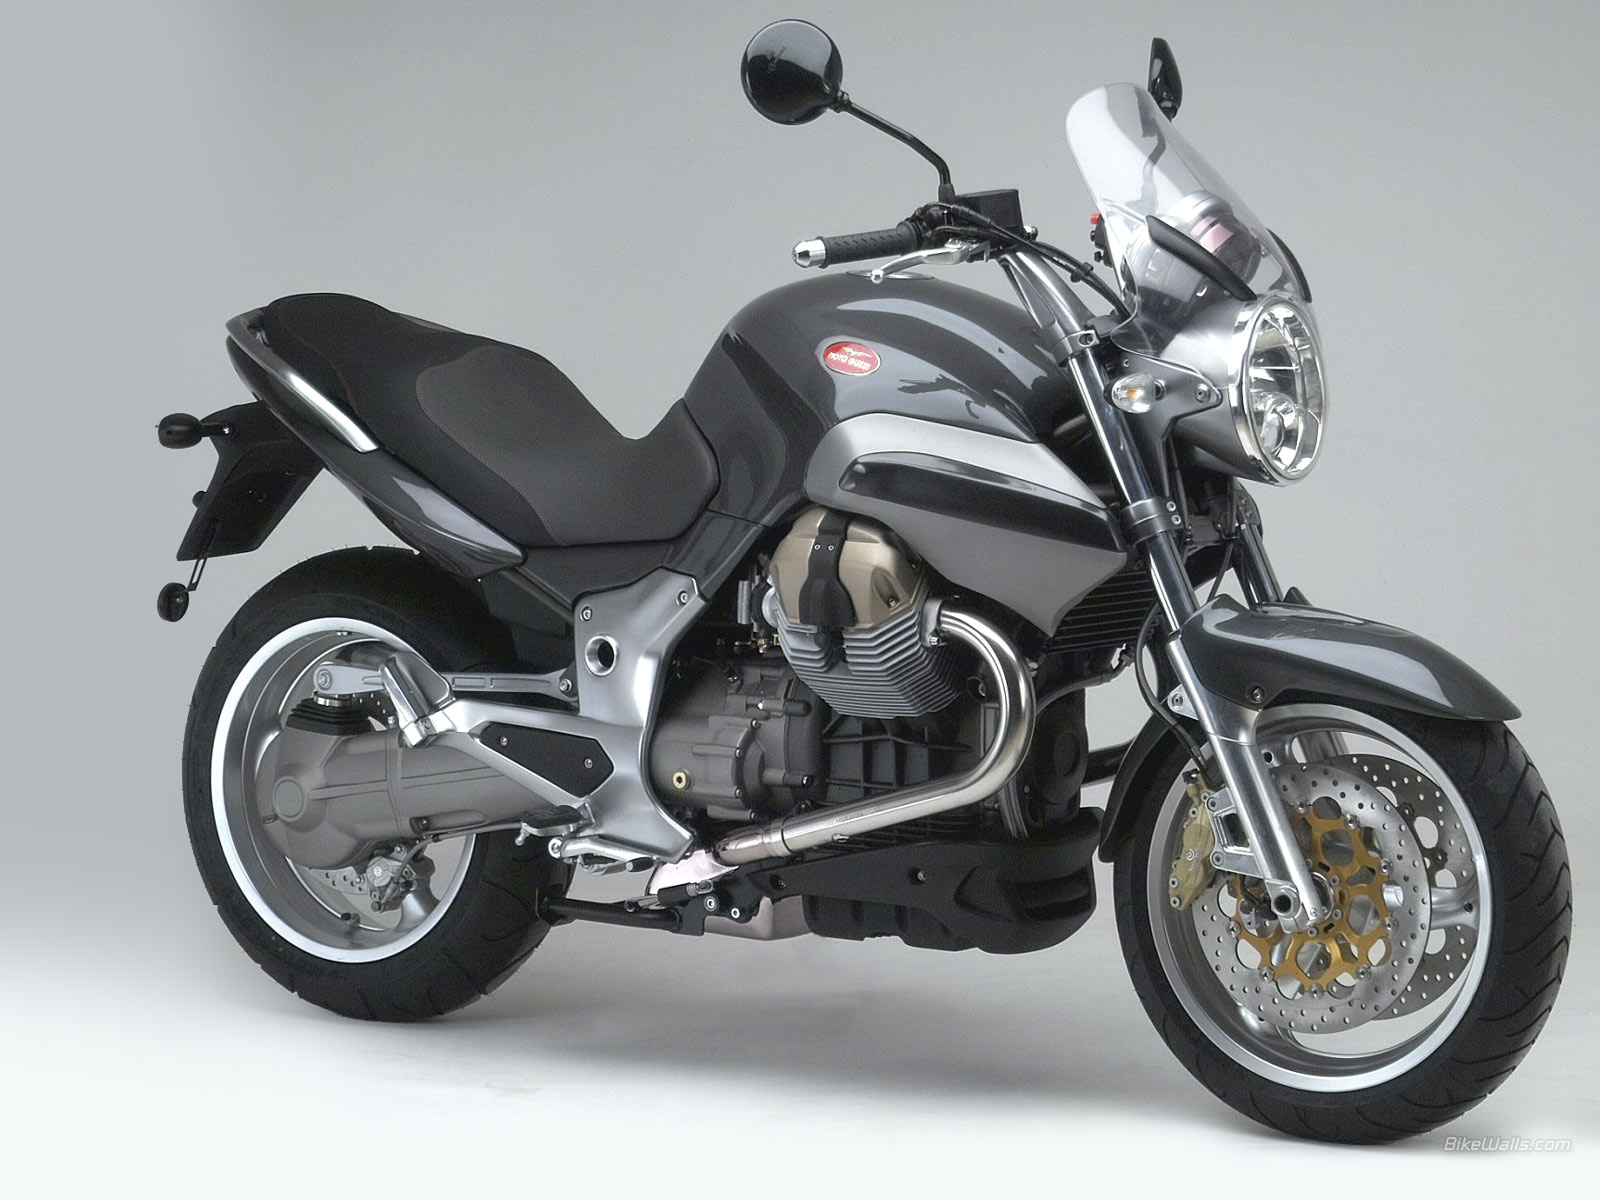 2004 moto guzzi breva 1100 pics specs and information. Black Bedroom Furniture Sets. Home Design Ideas